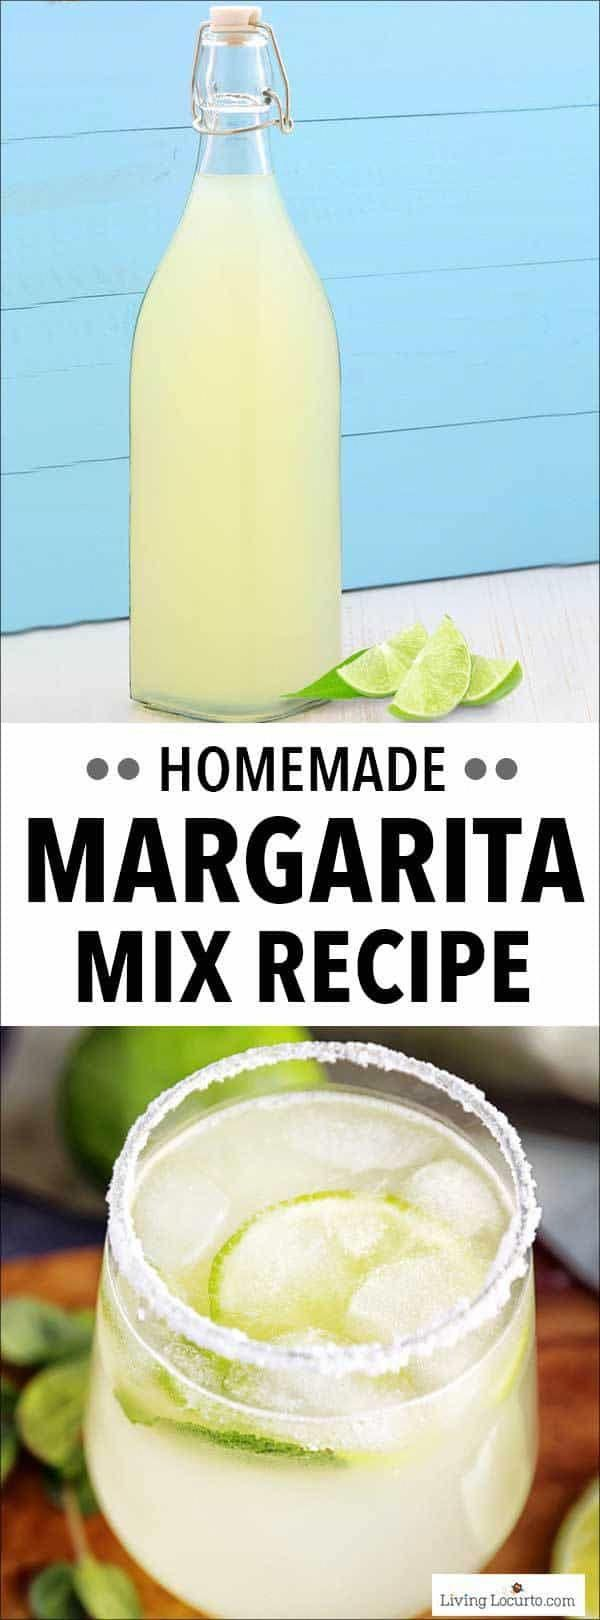 This Margarita Mix recipe is an easy homemade mix to make at home. Add tequila for a pitcher of margaritas or a margarita by the glass. This is a great cocktail recipe to make for your next party! #margarita #margaritamix #cocktail #drinks #drinkrecipe #recipes #partyfood #partydrink #cocktails #yummy #easyrecipes #partycocktailrecipes